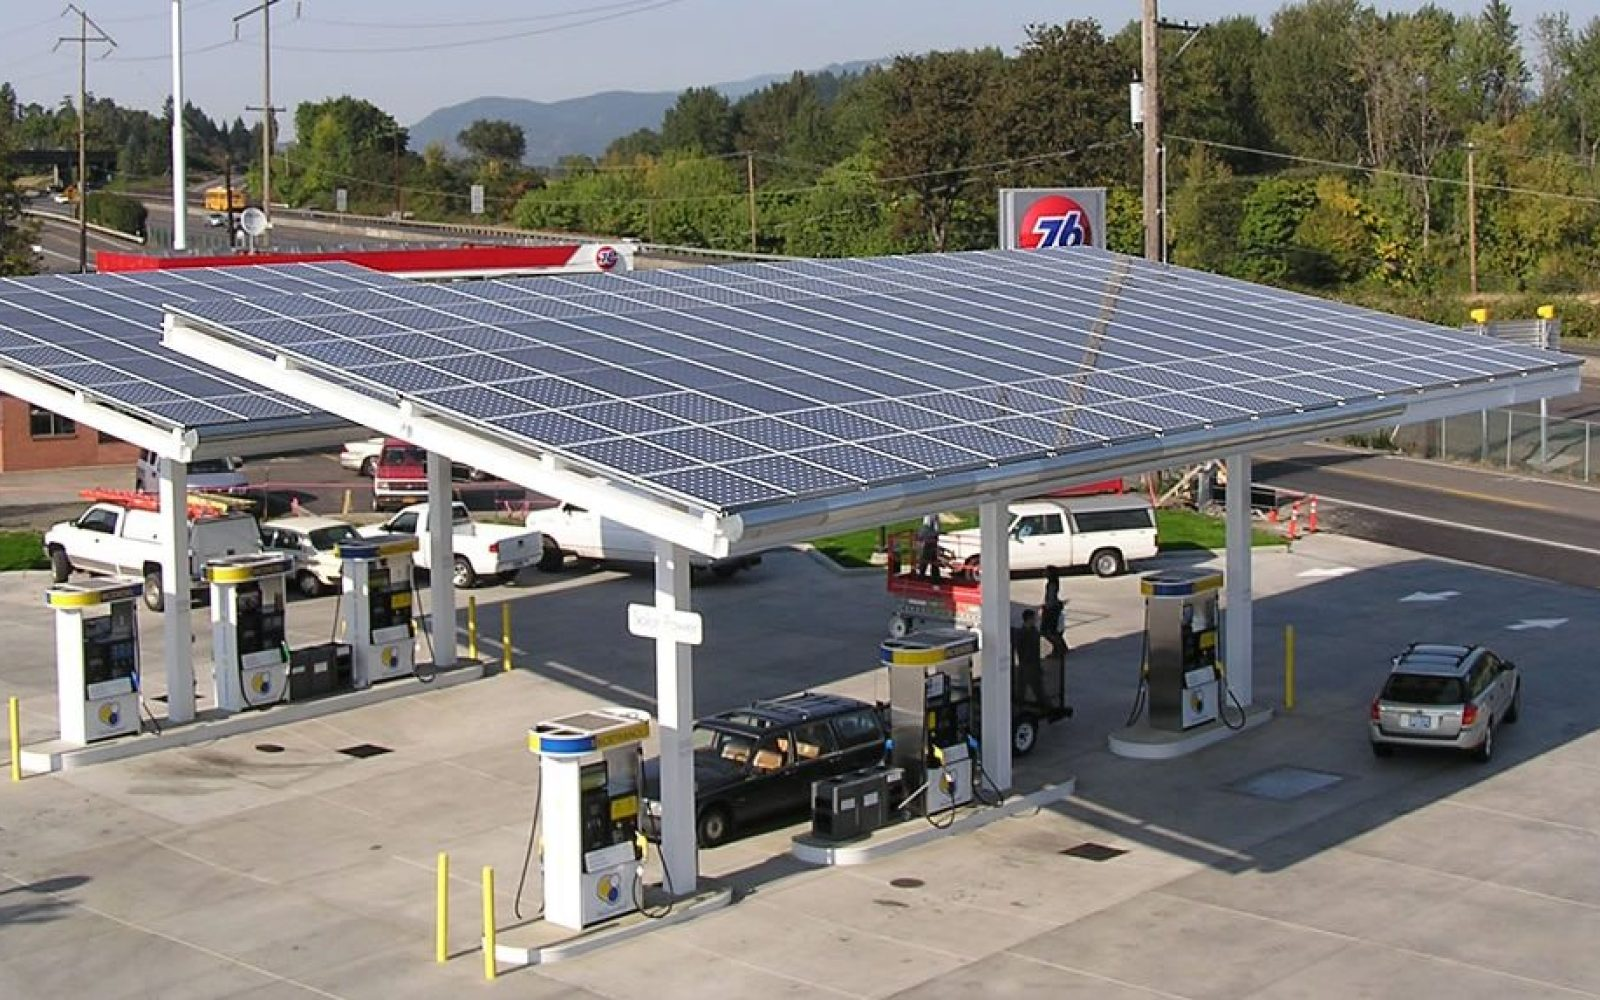 Shell says it will start installing electric vehicle chargers at its gas stations this year